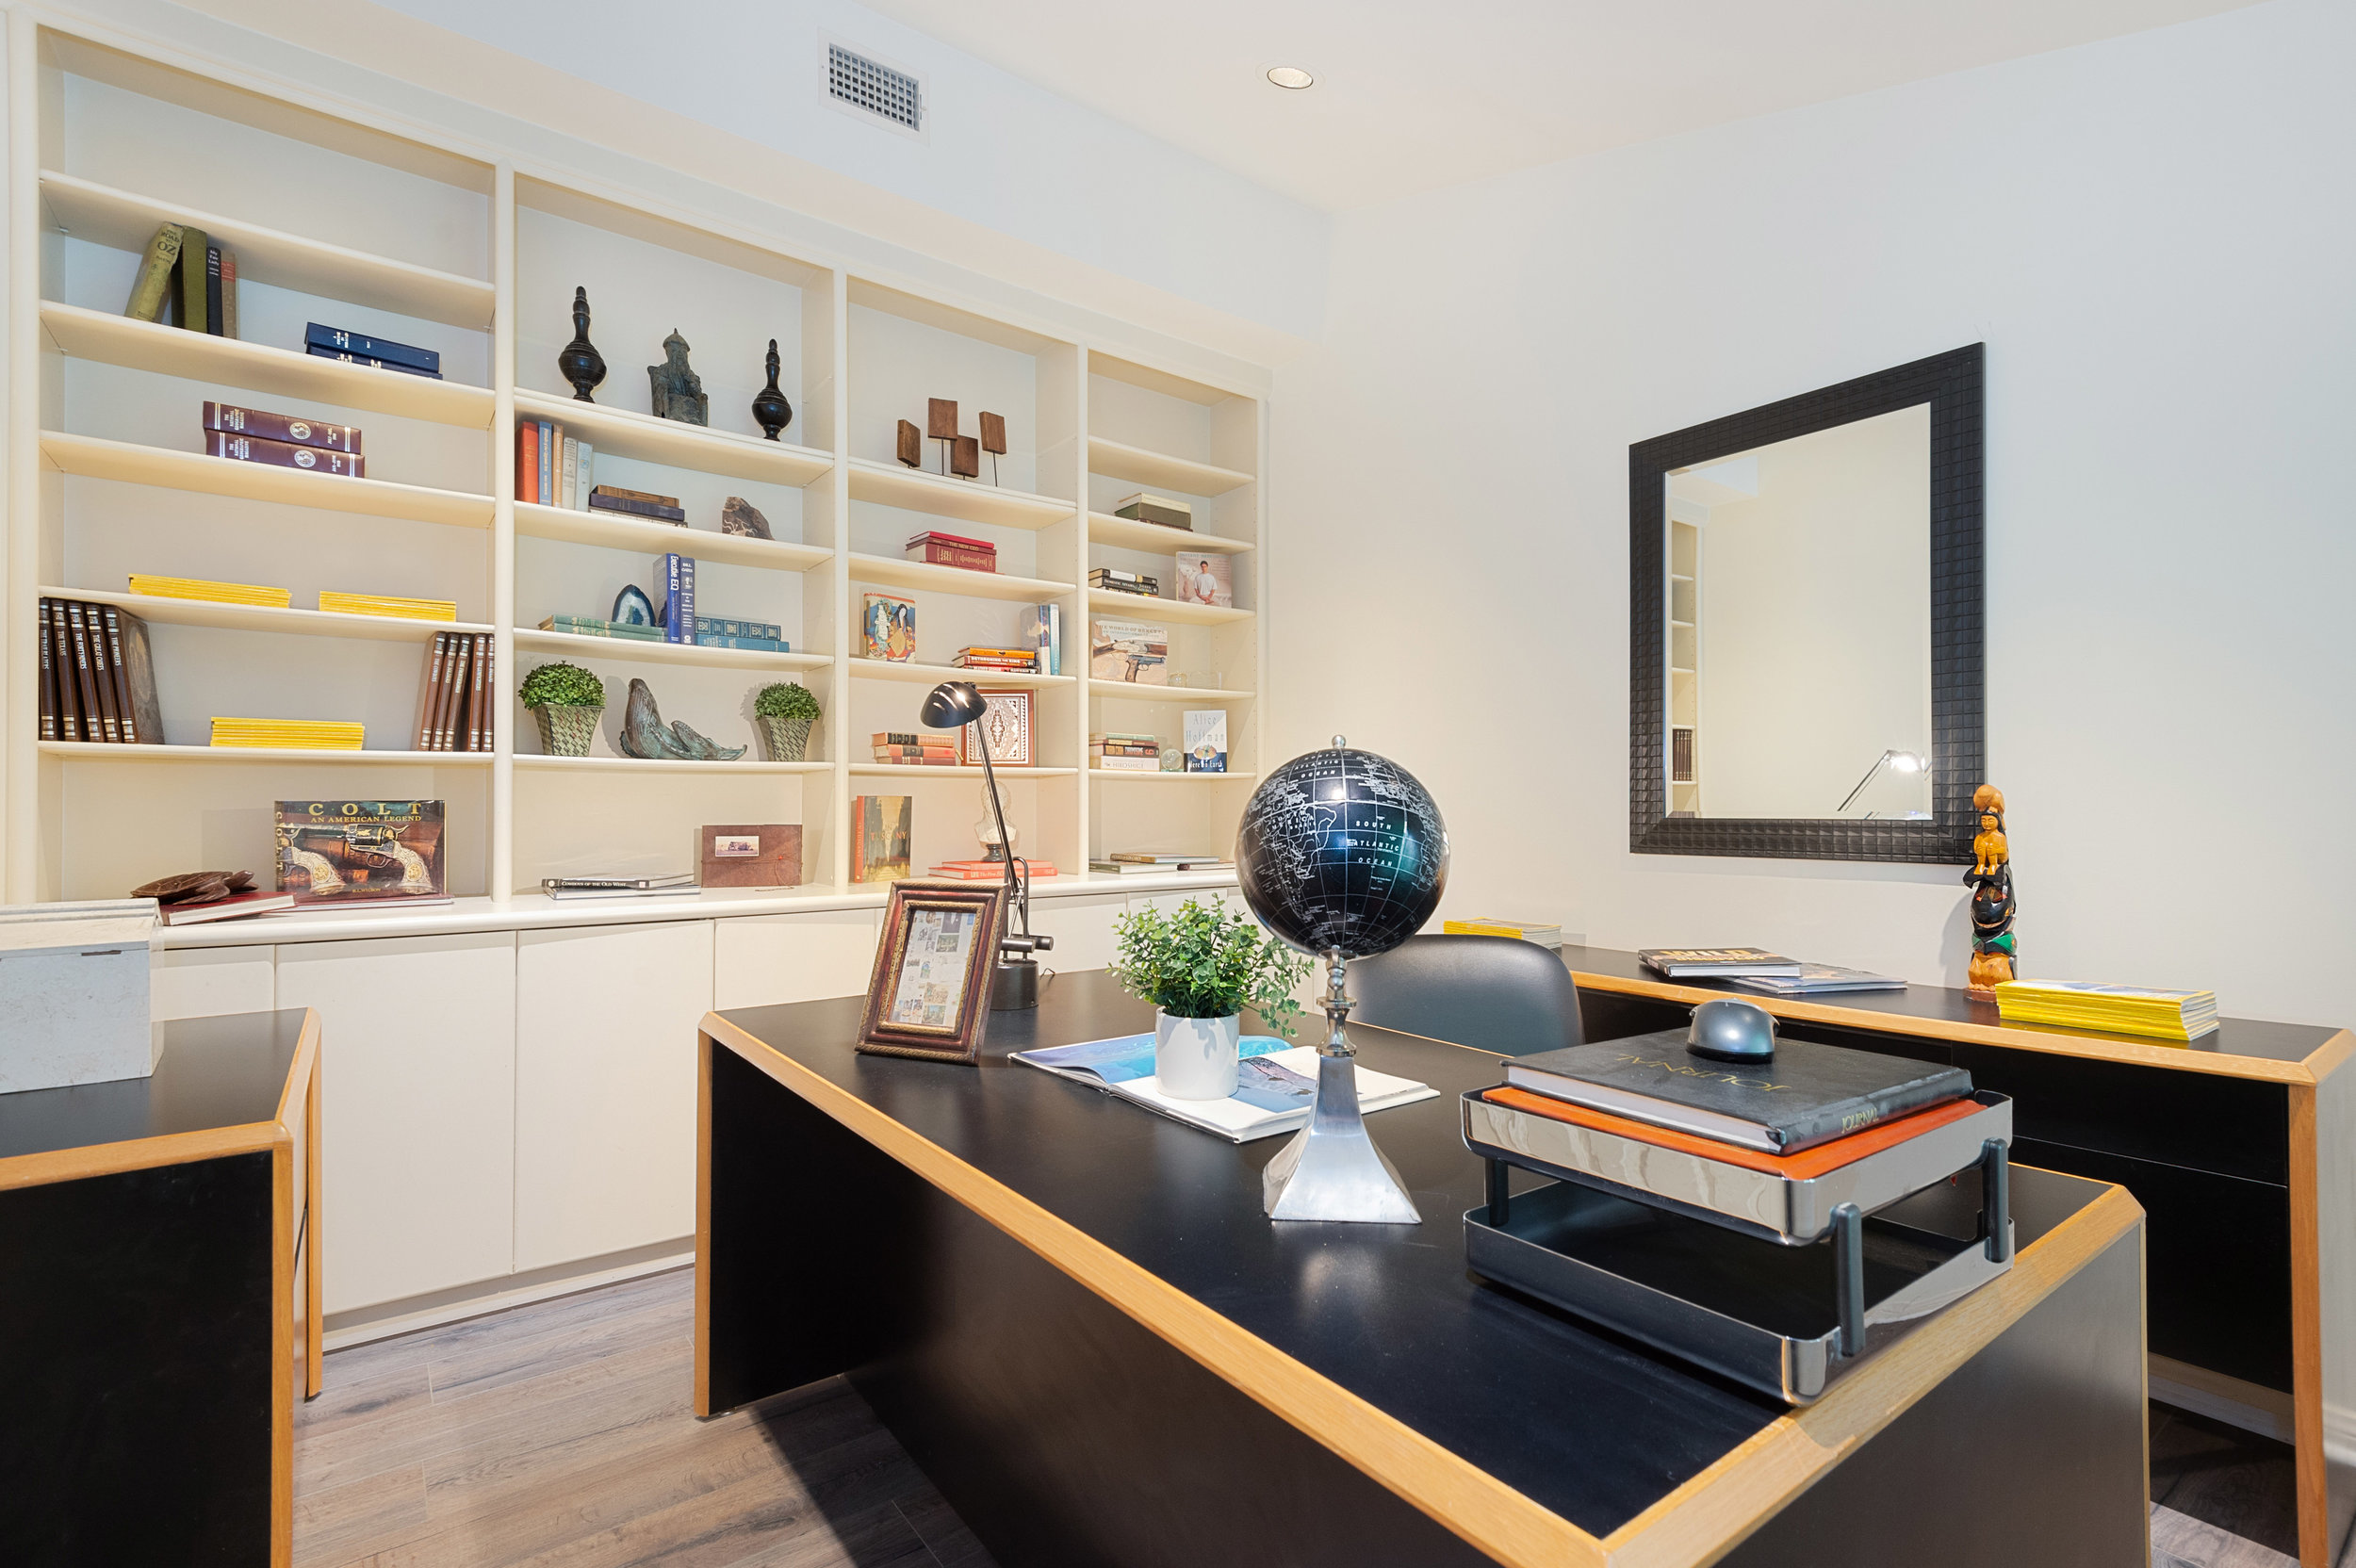 018 Office 12027 Talus Place Beverly Hills 90210 For Sale Lease The Malibu Life Team Luxury Real Estate.jpg